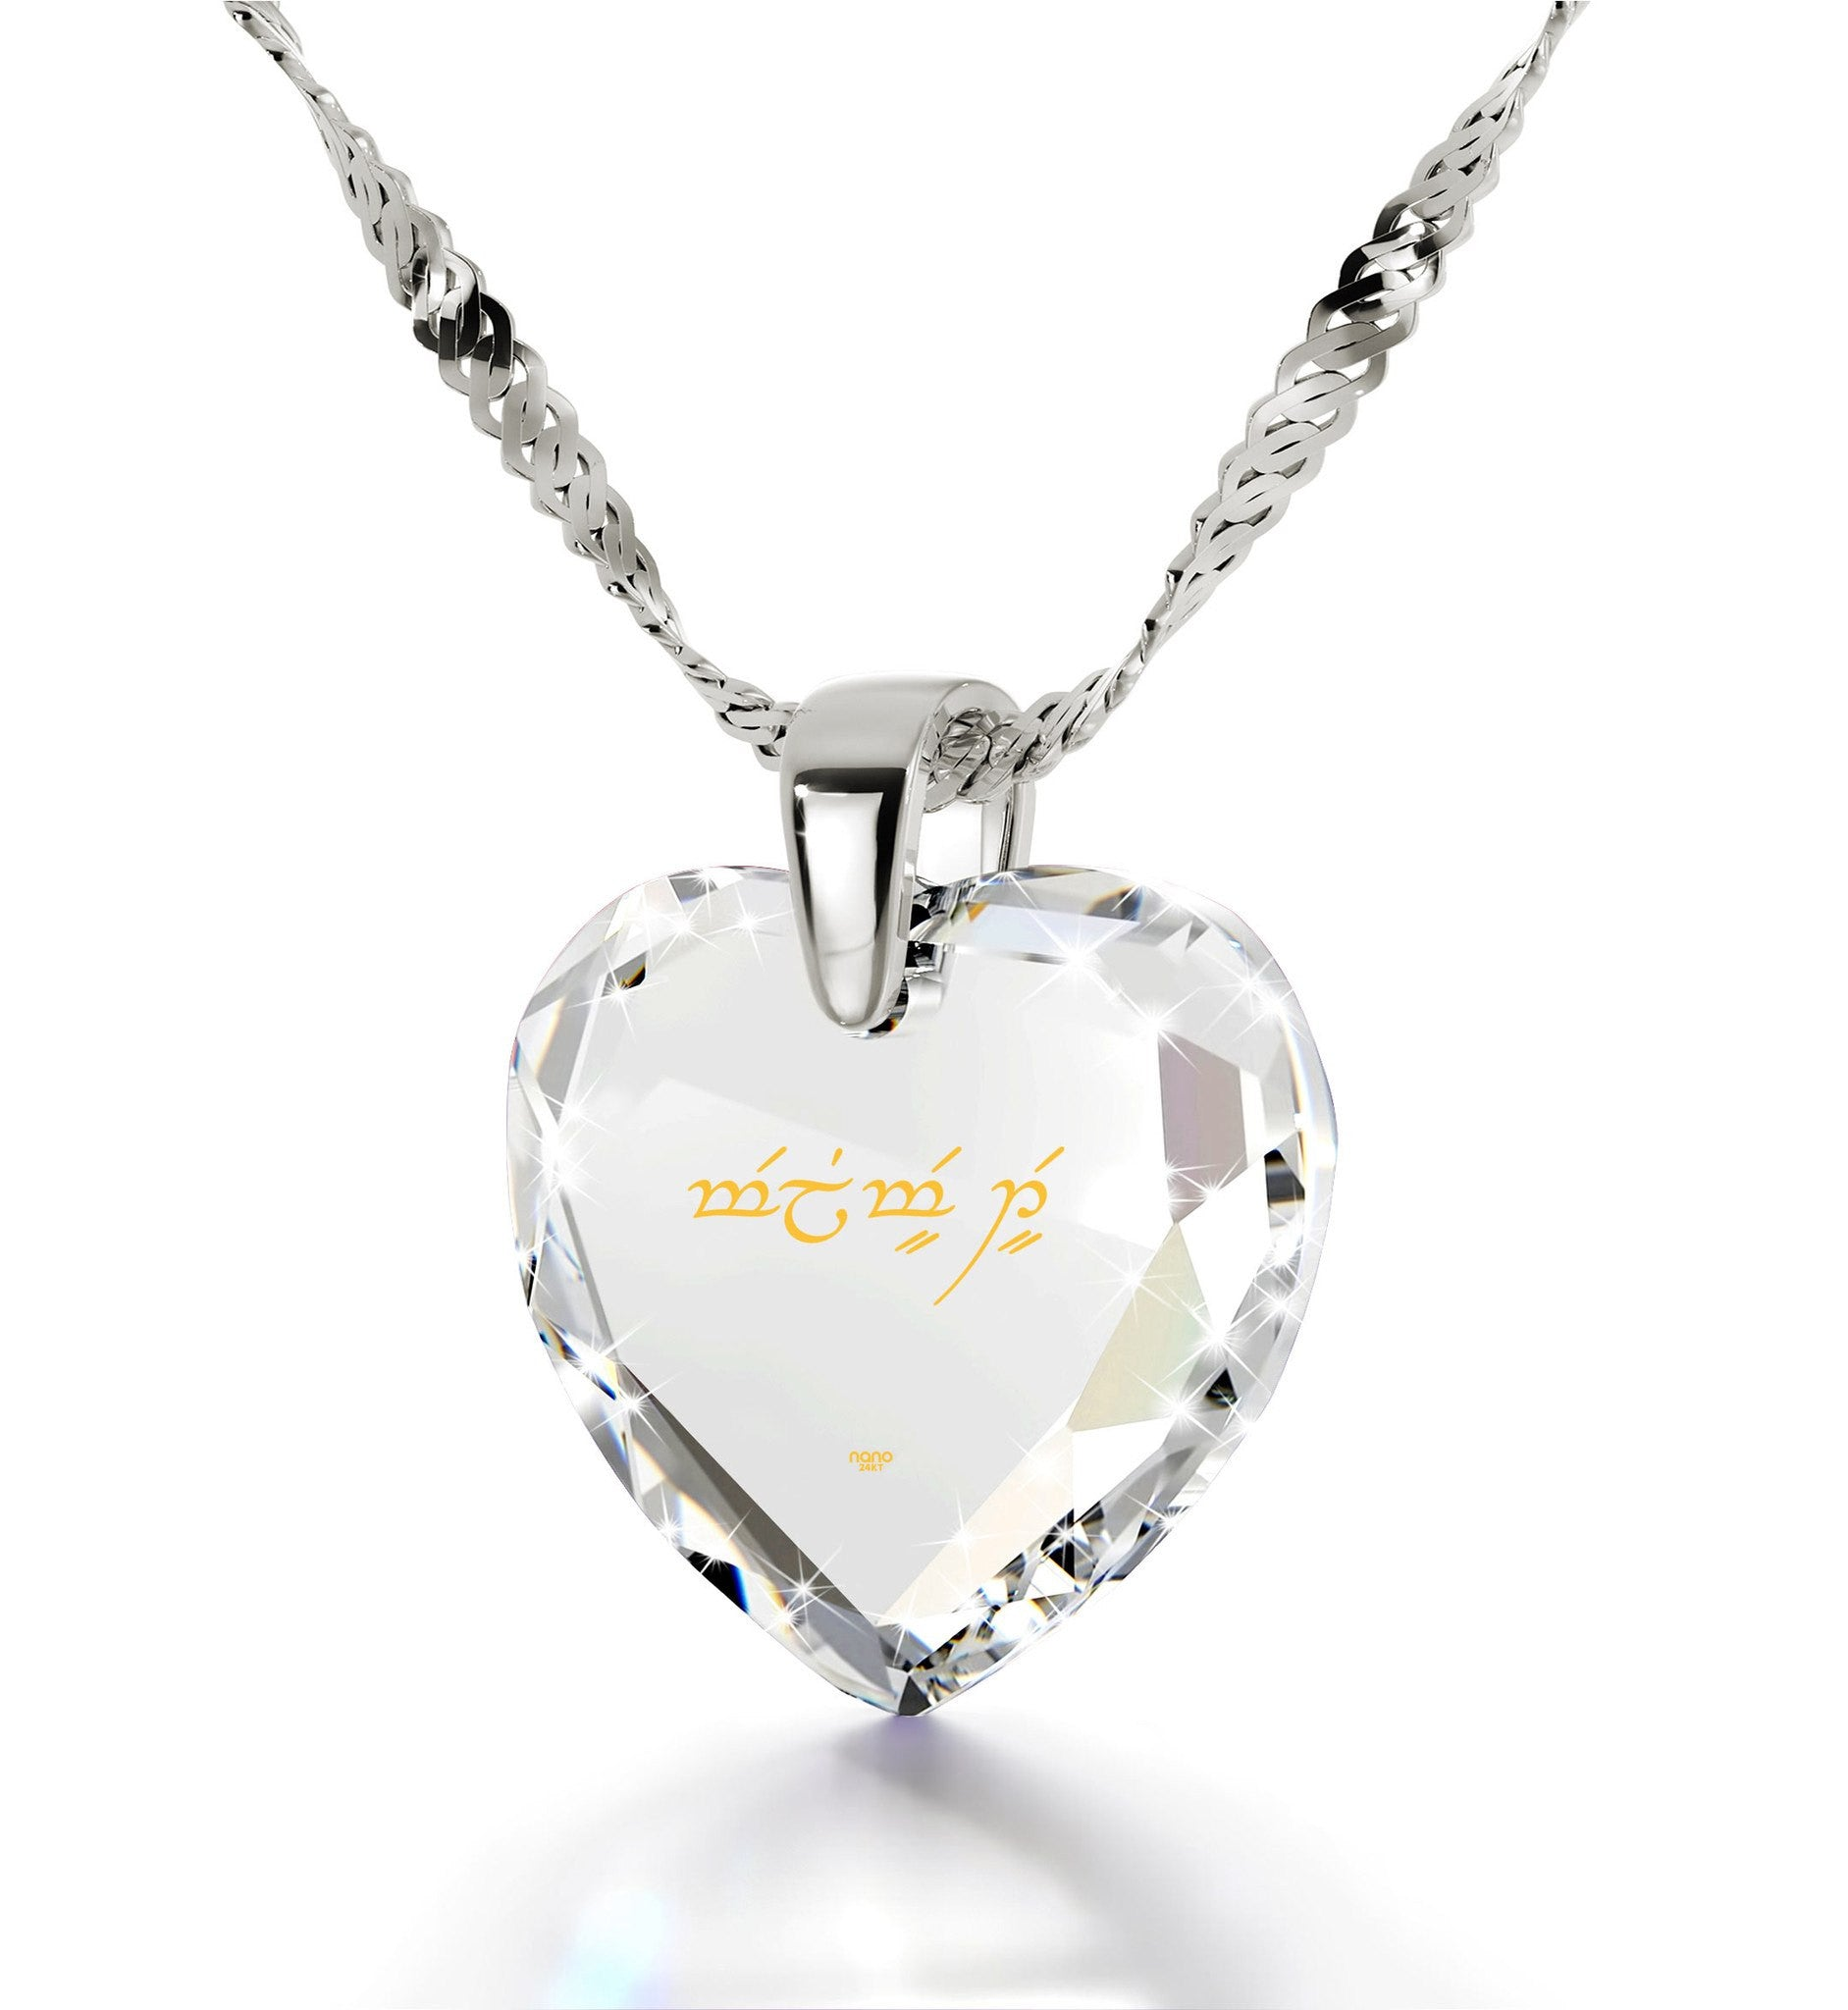 "Presents for Girlfriend,""I Love You"" in Qenya Elvish, Cool Christmas Gift, Clear CZ Jewelry"